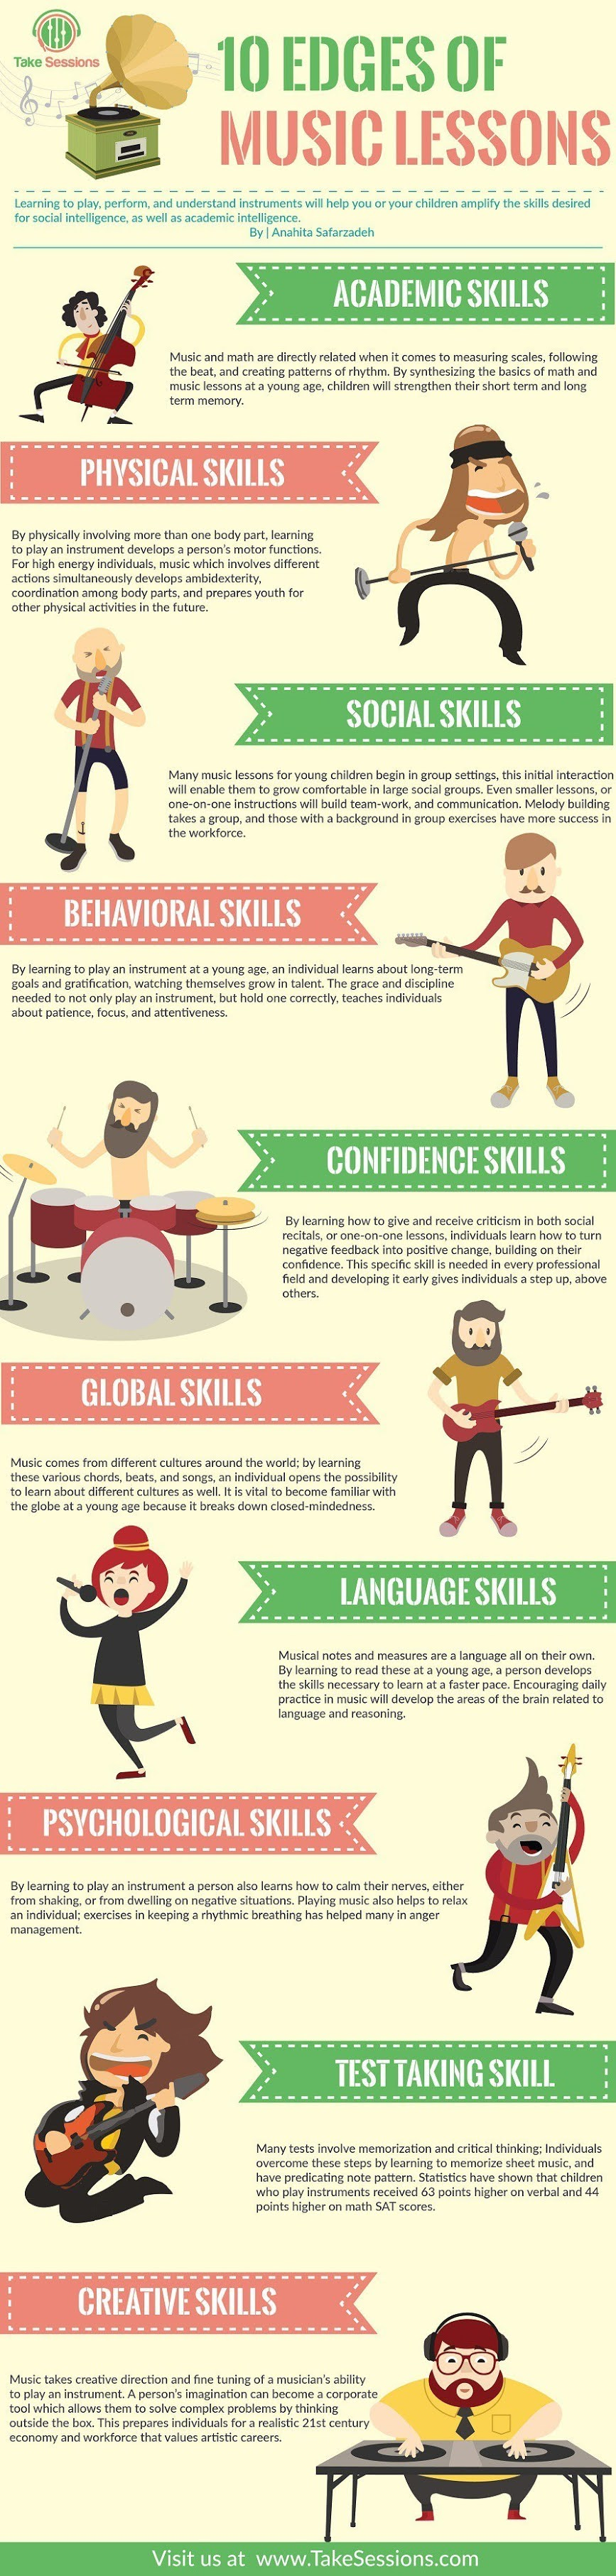 10 Edges of Music Lessons #infographic